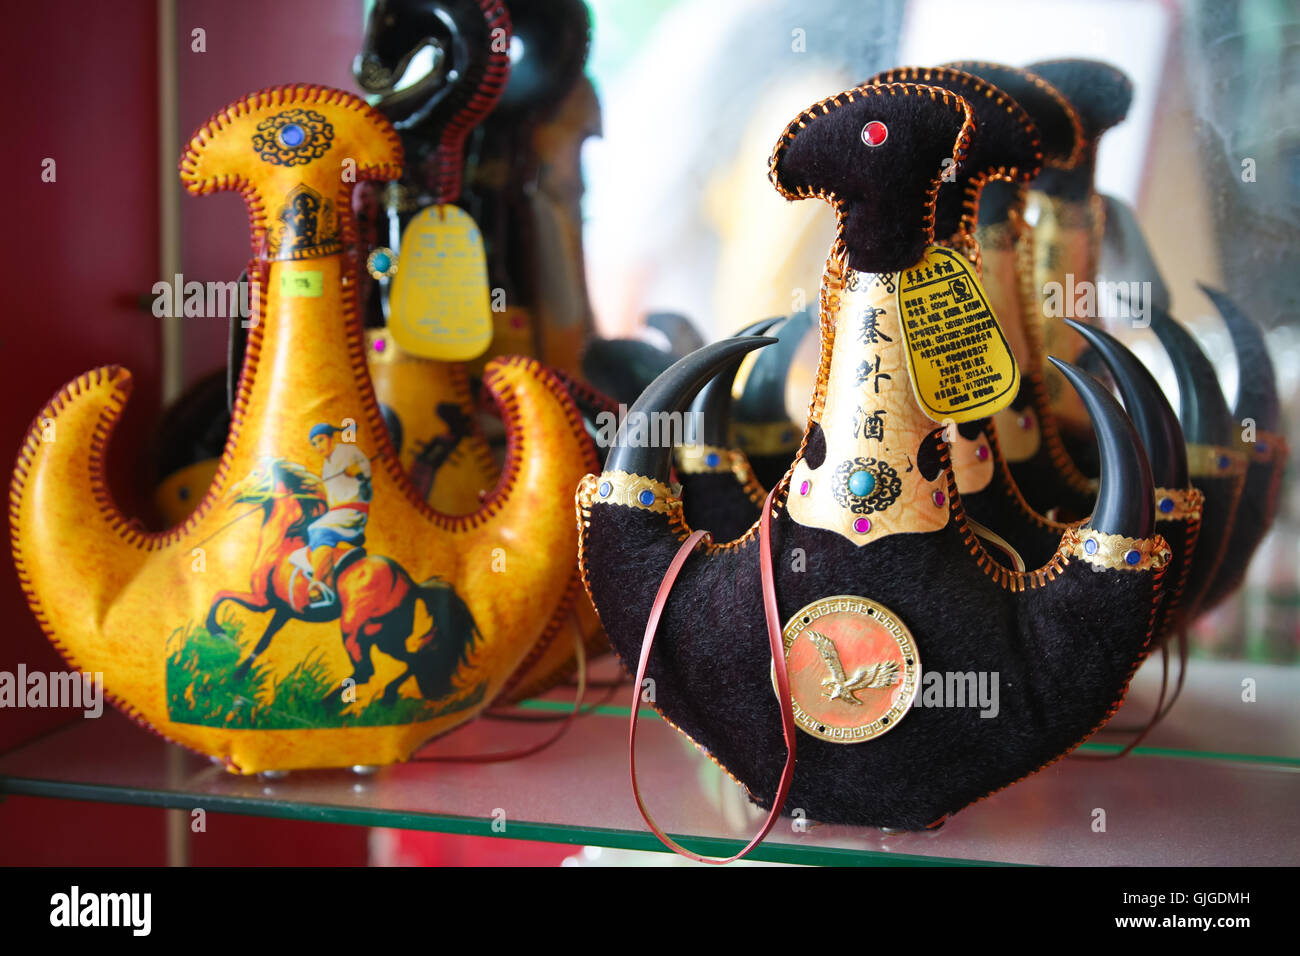 China mongolian liquor in fancy leather pouch on display rack of a local store in Guangzhou, Guangdong, China. - Stock Image